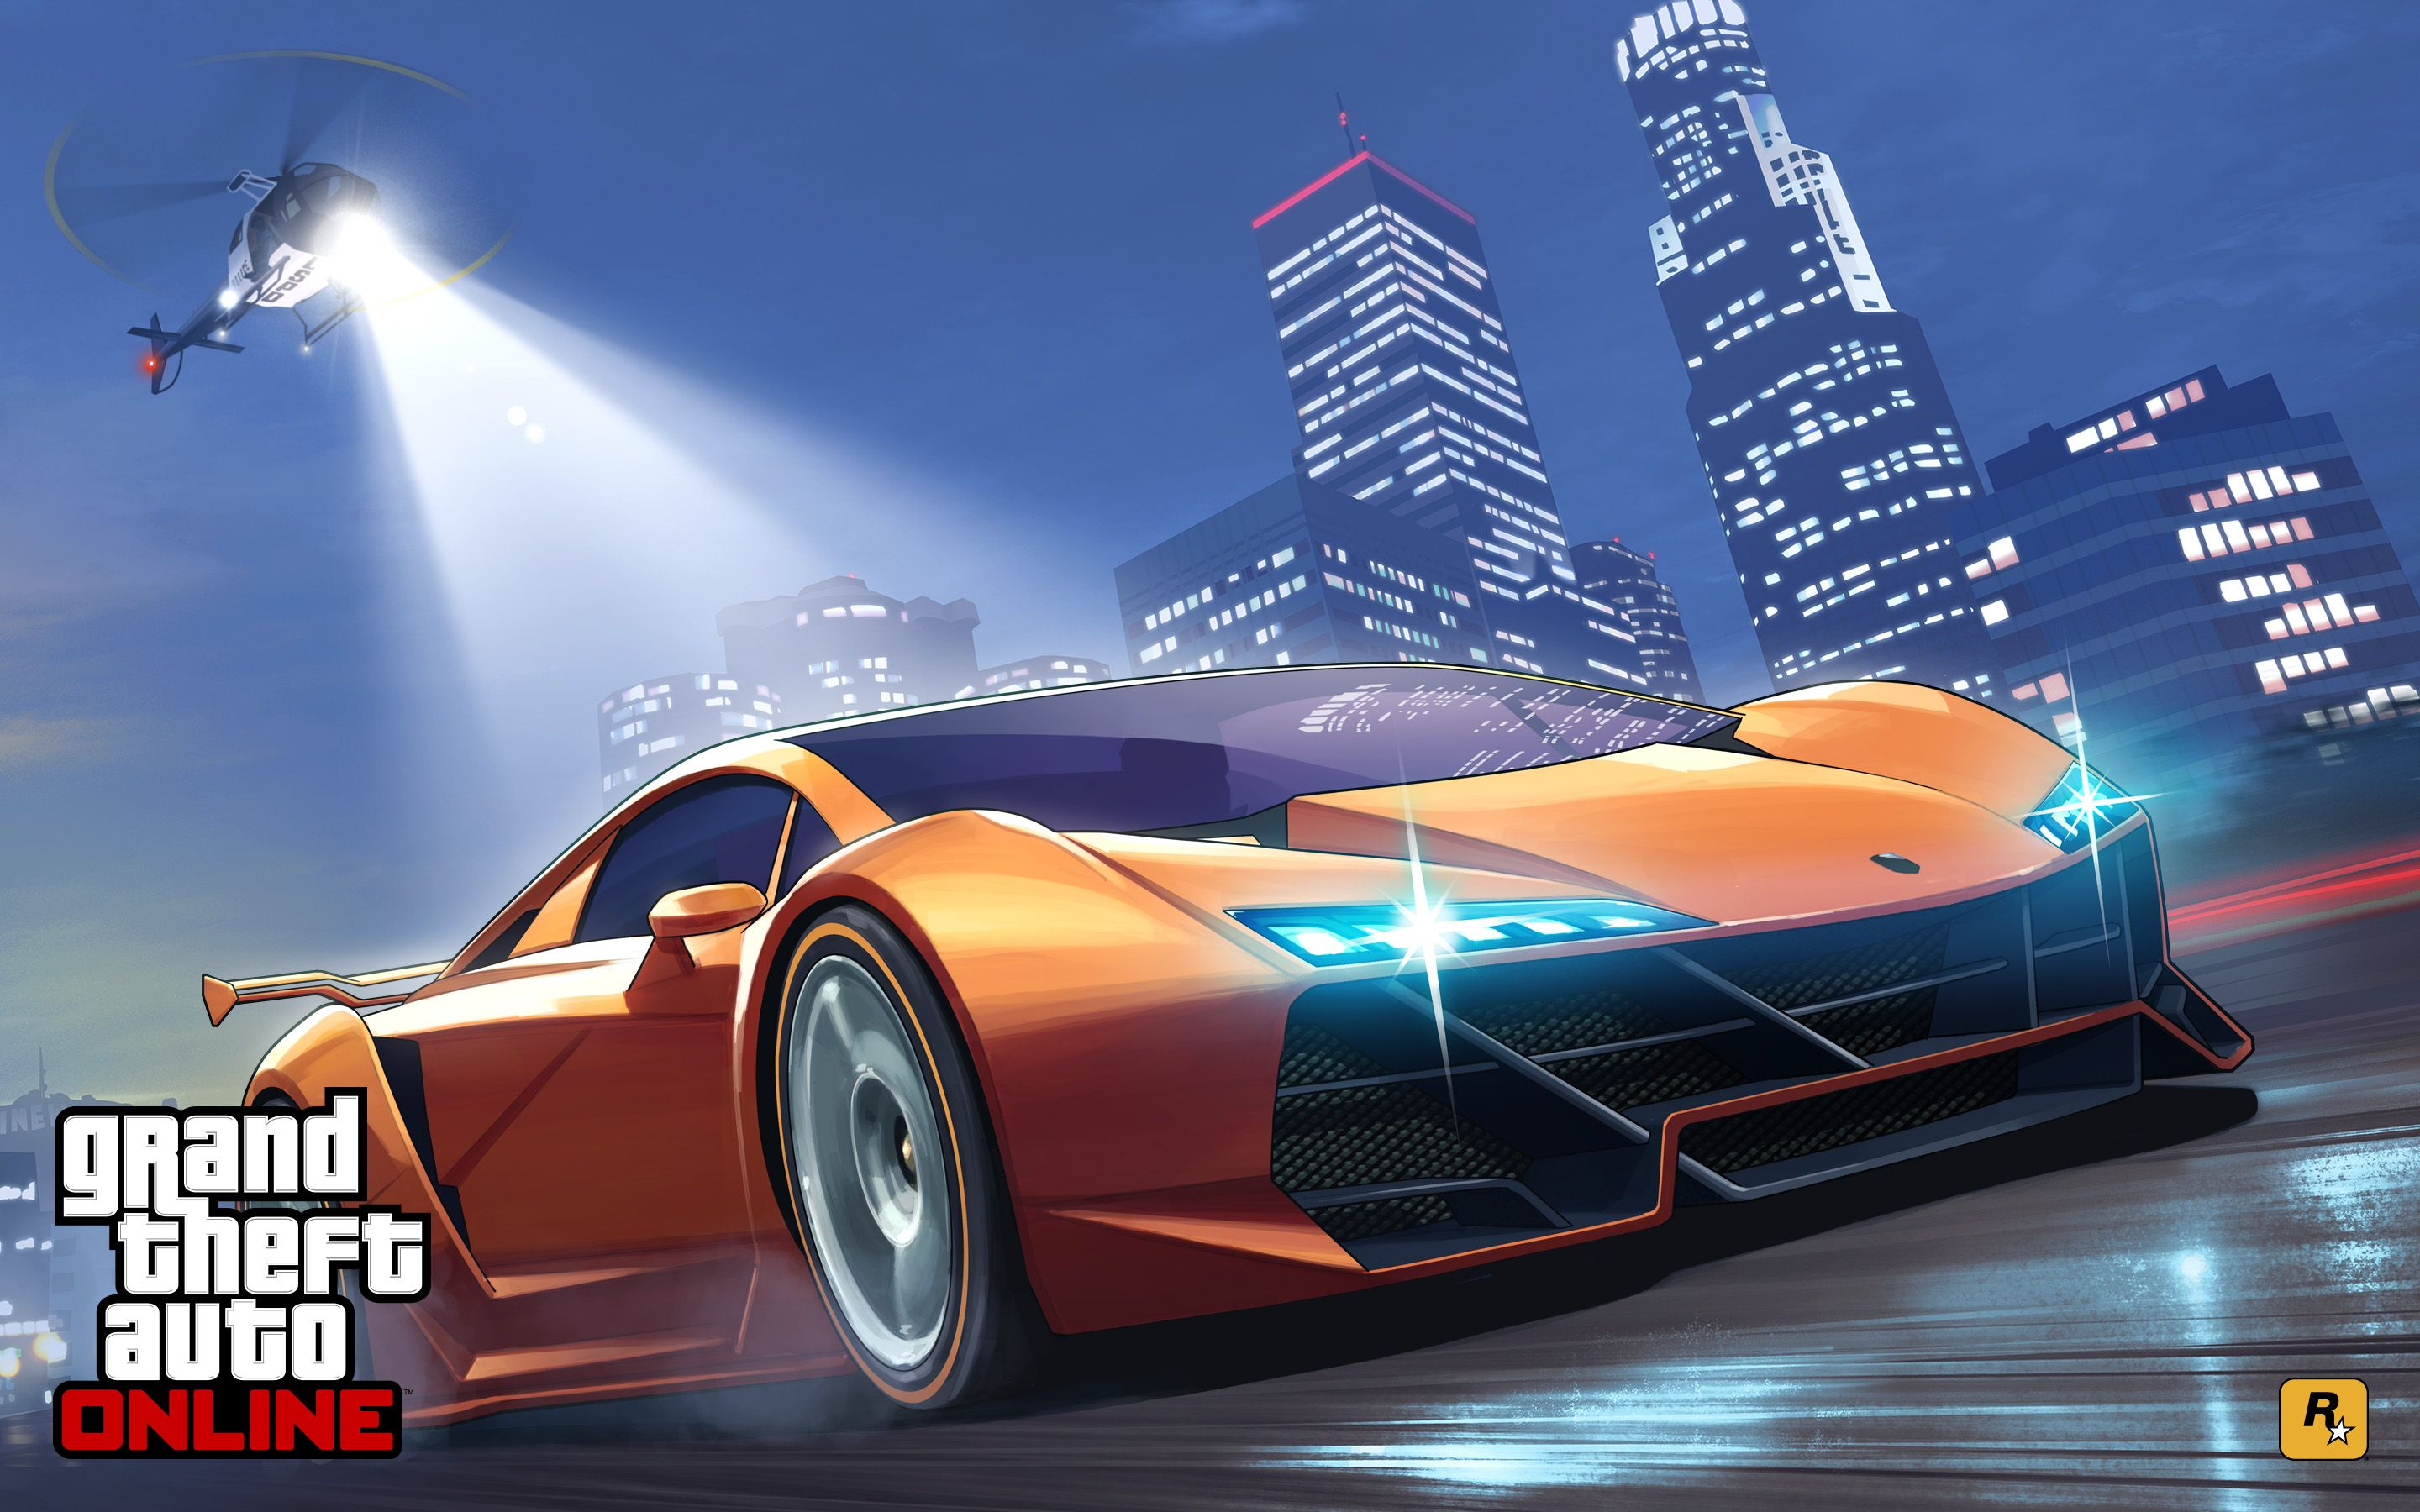 Best Grand Theft Auto Online Wallpapers Images grand